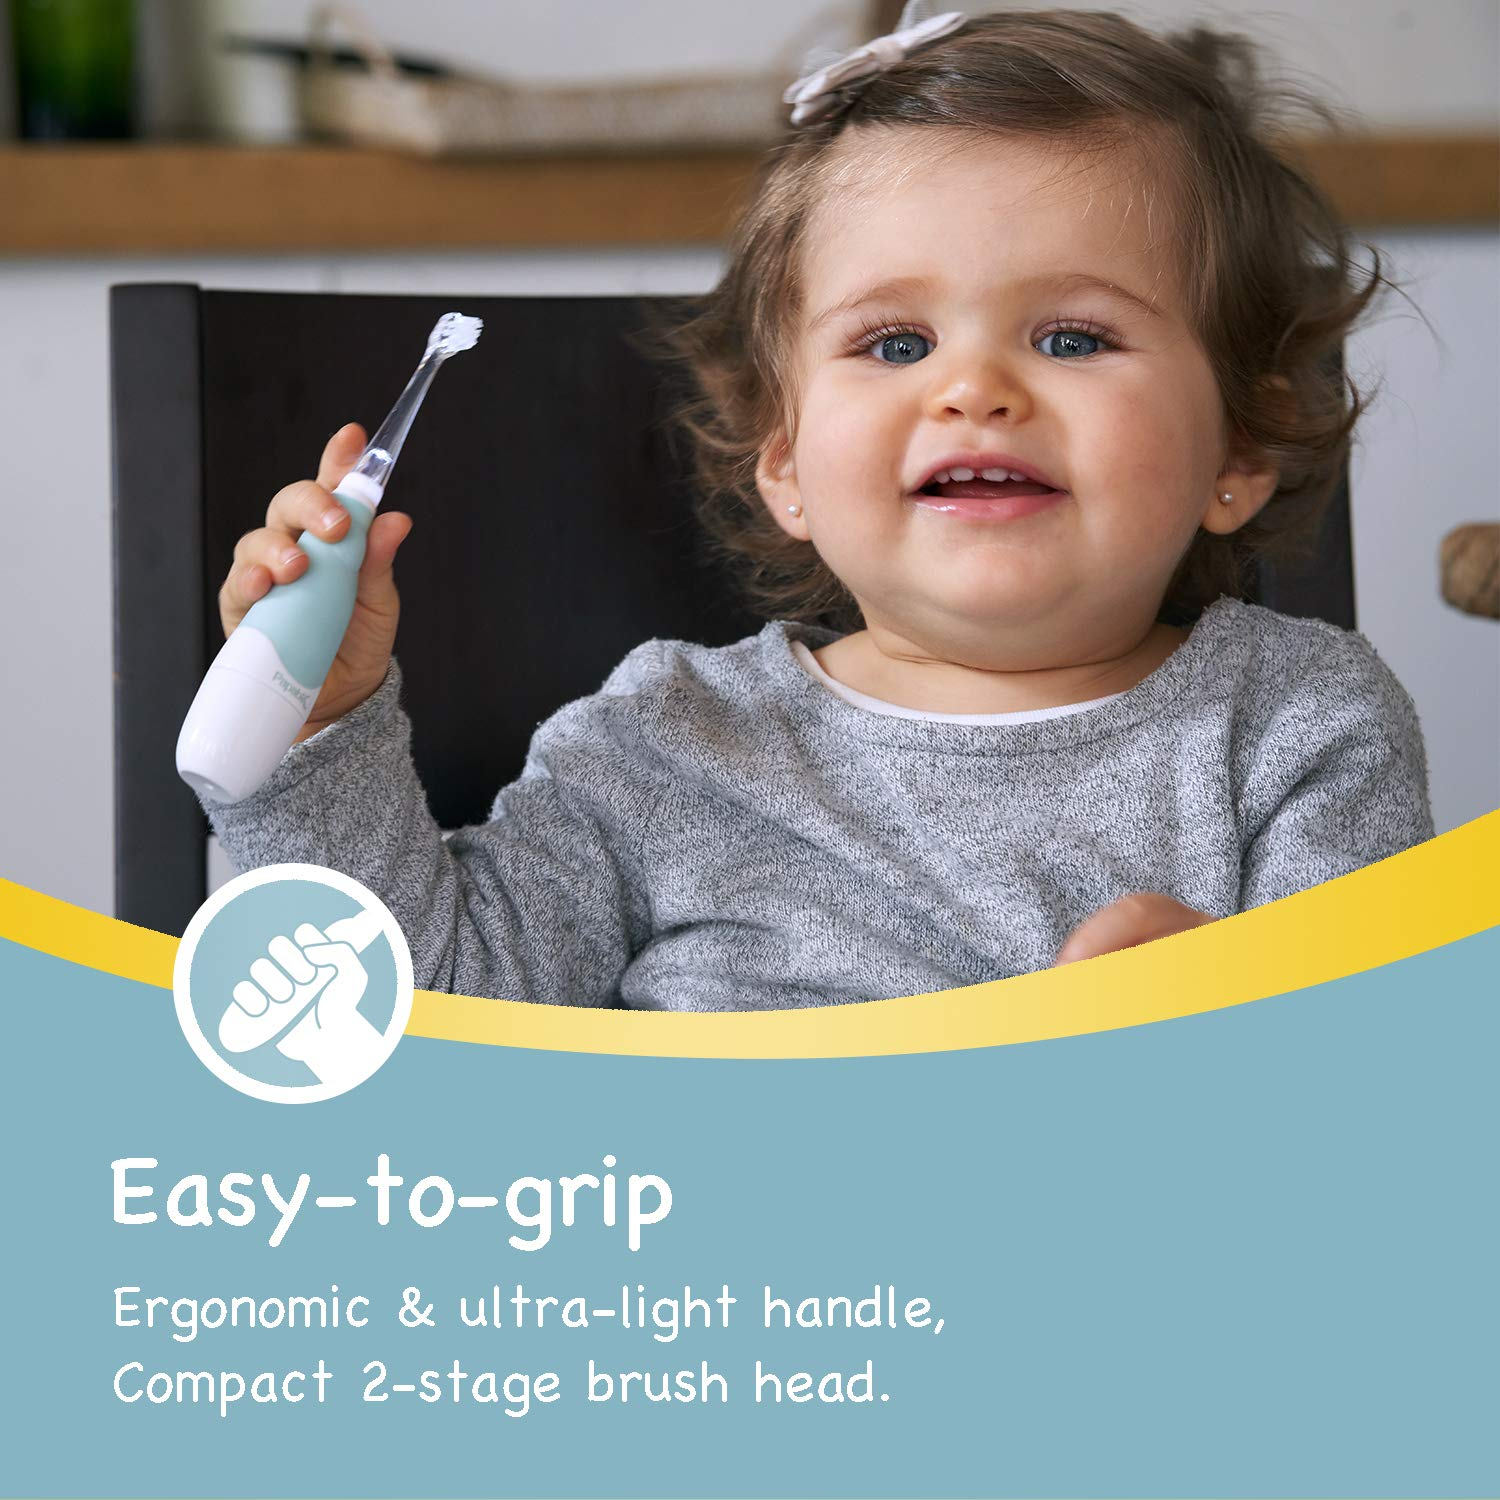 Papablic BabyHandy 2-Stage Sonic Electric Toothbrush for Babies and Toddlers Ages 0-3 Years by Papablic (Image #5)